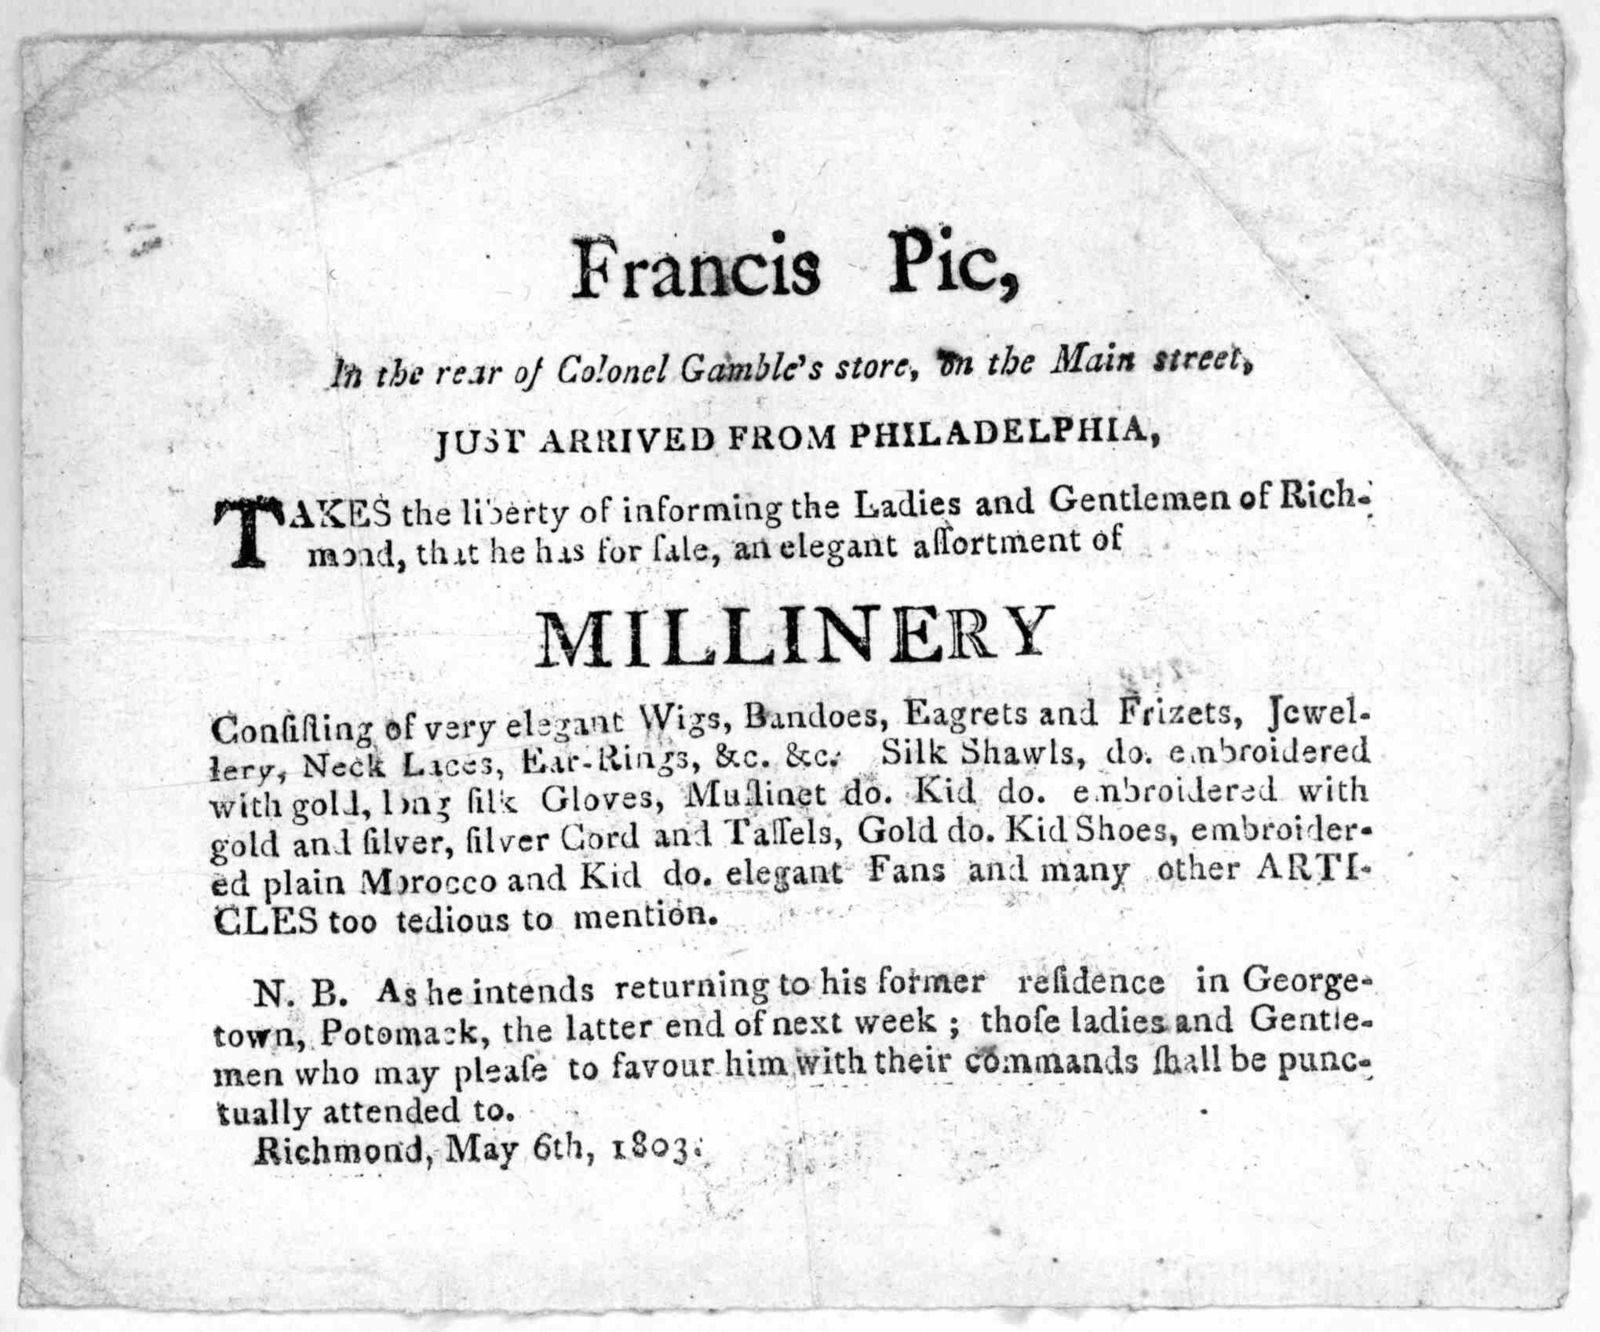 Francis Pic, in the rear of Colonel Gamble's store, on the Main Street, just arrived from Philadelphia, takes the liberty of informing the ladies and gentlemen of Richmond that he has for sale, an elegant assortment of millinery ... Richmond May